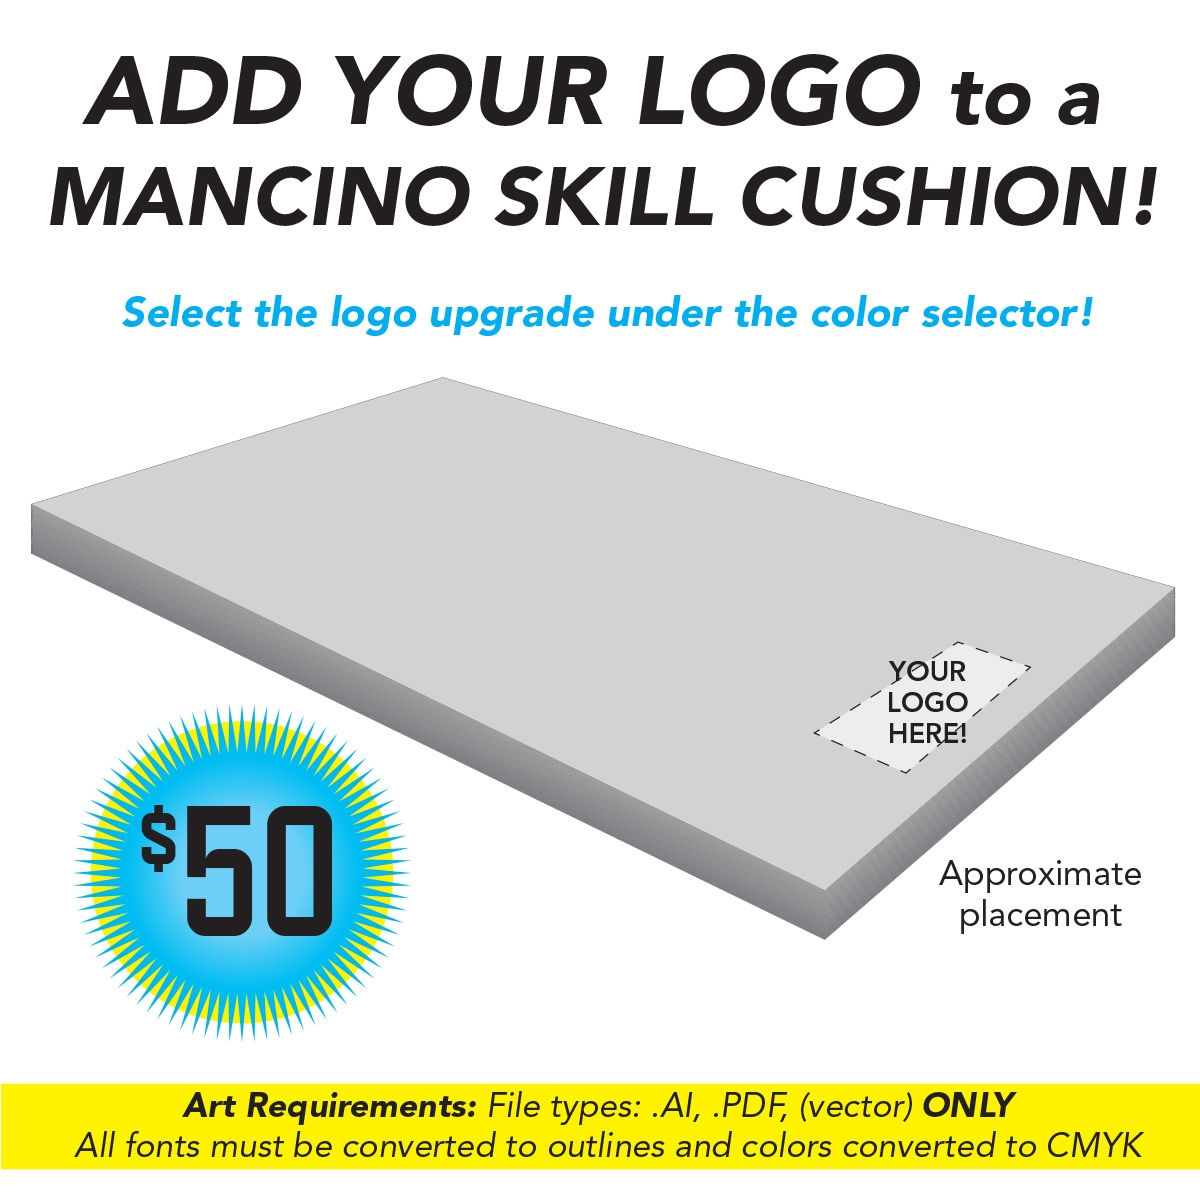 brand your tumbl trak with mancino mats